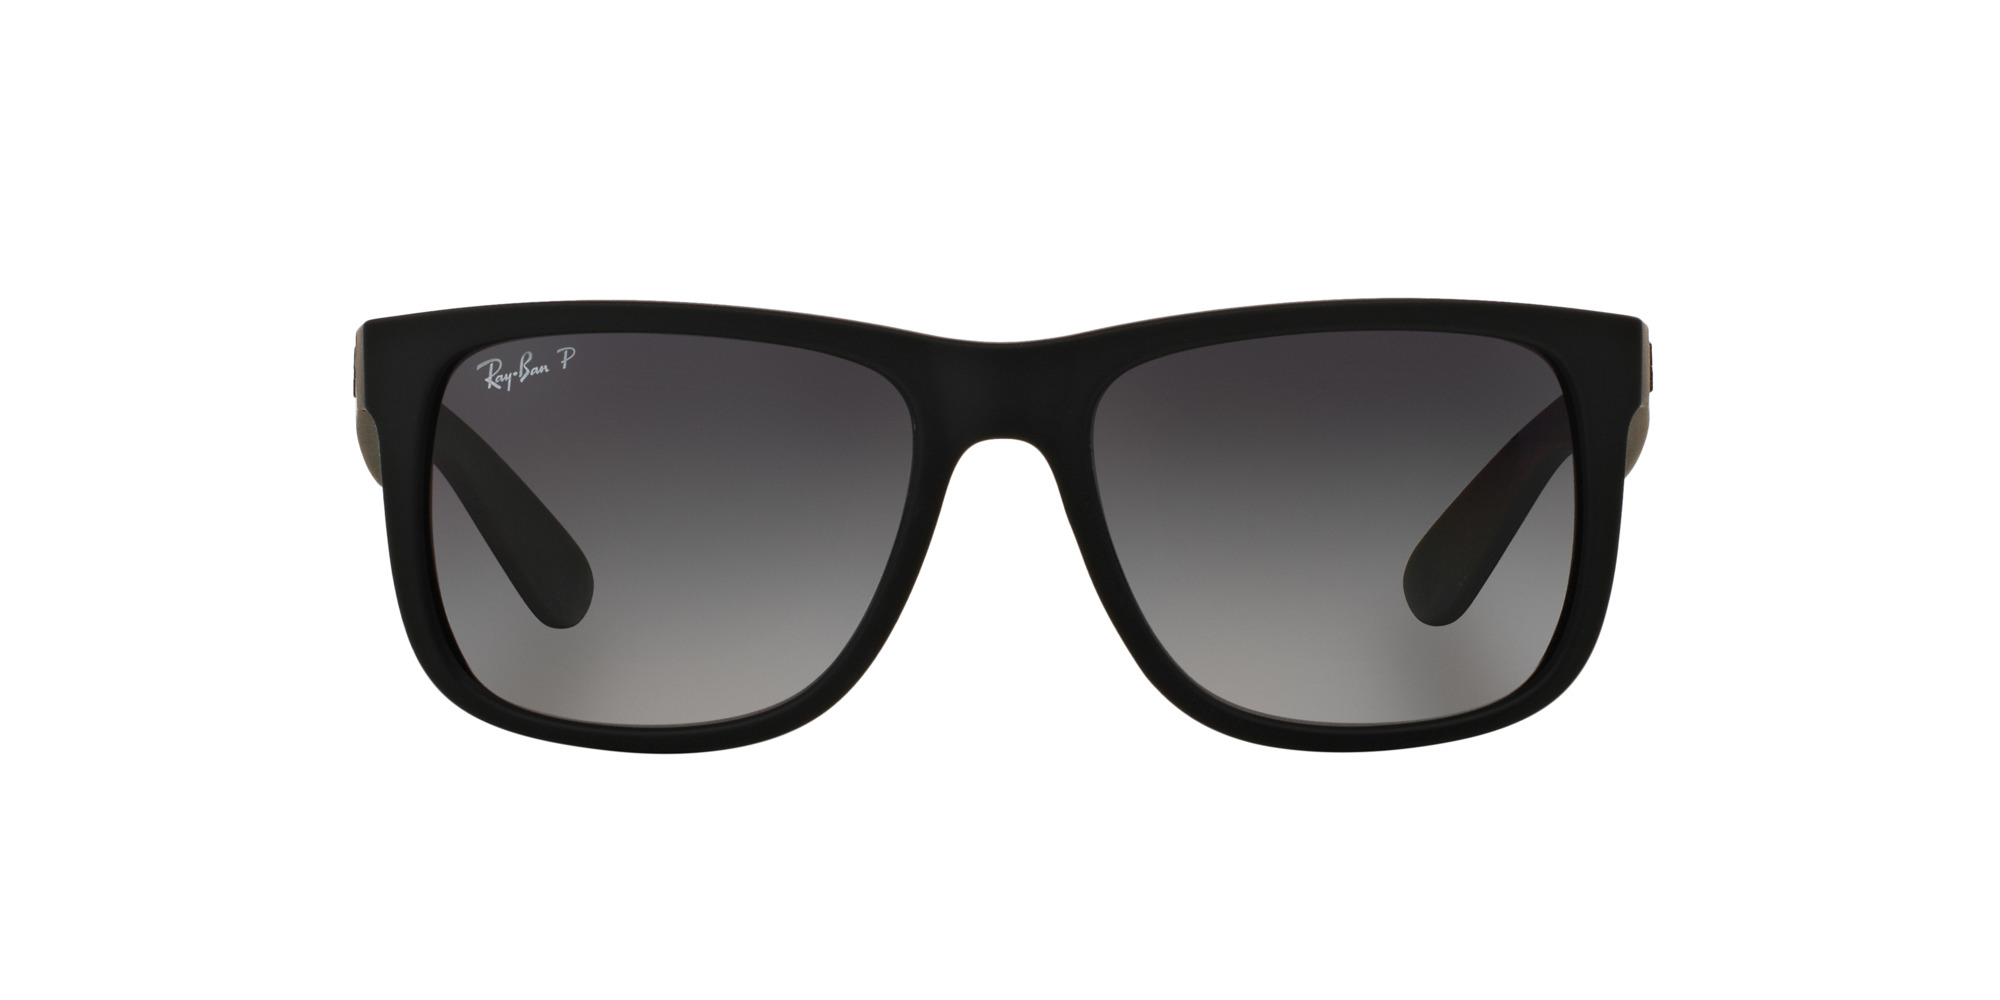 a21413b9d959c Ripley - Ray Ban Justin Black Rubber lente Grey Gradient Polarized